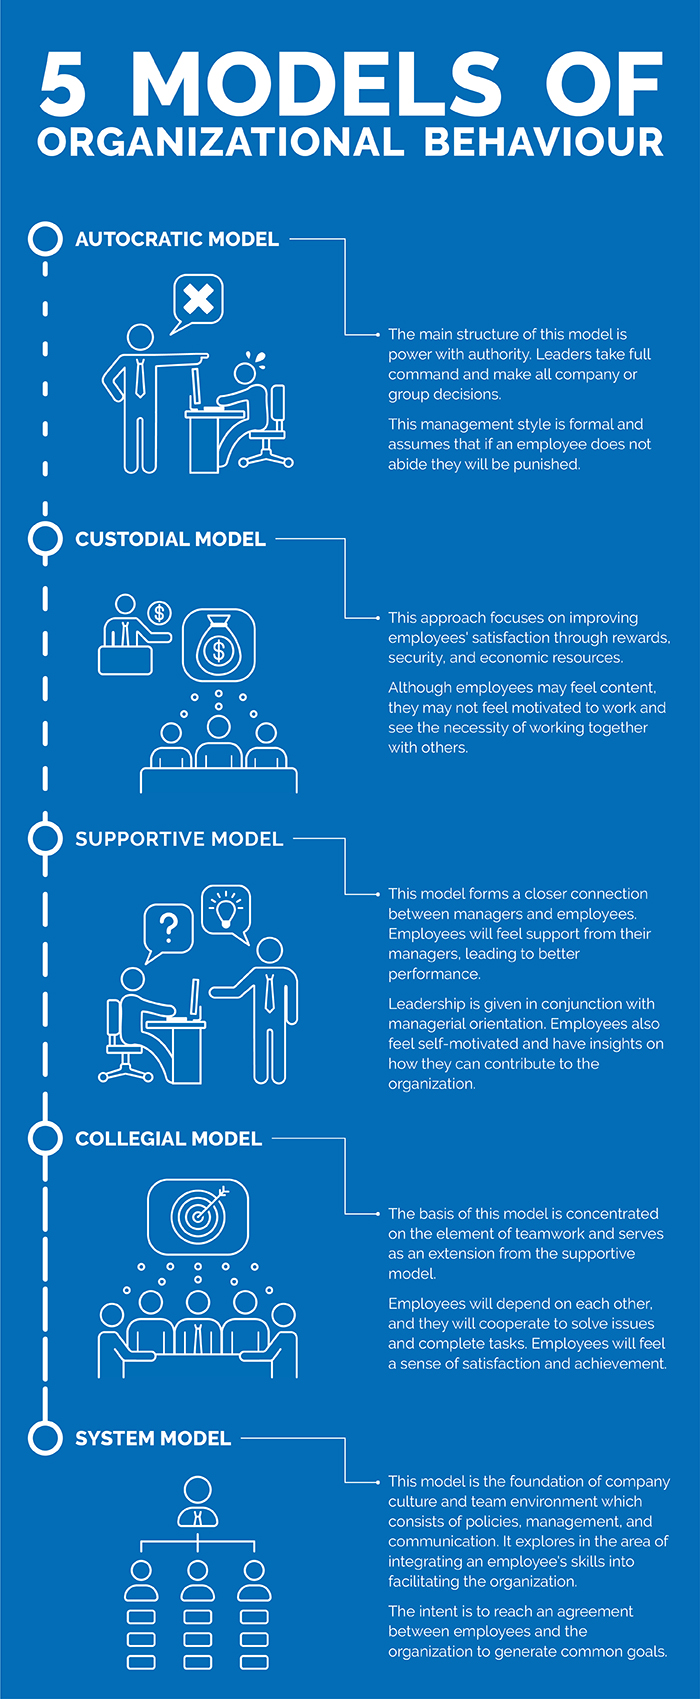 5 Models of organizational behaviour infographic-3.jpg